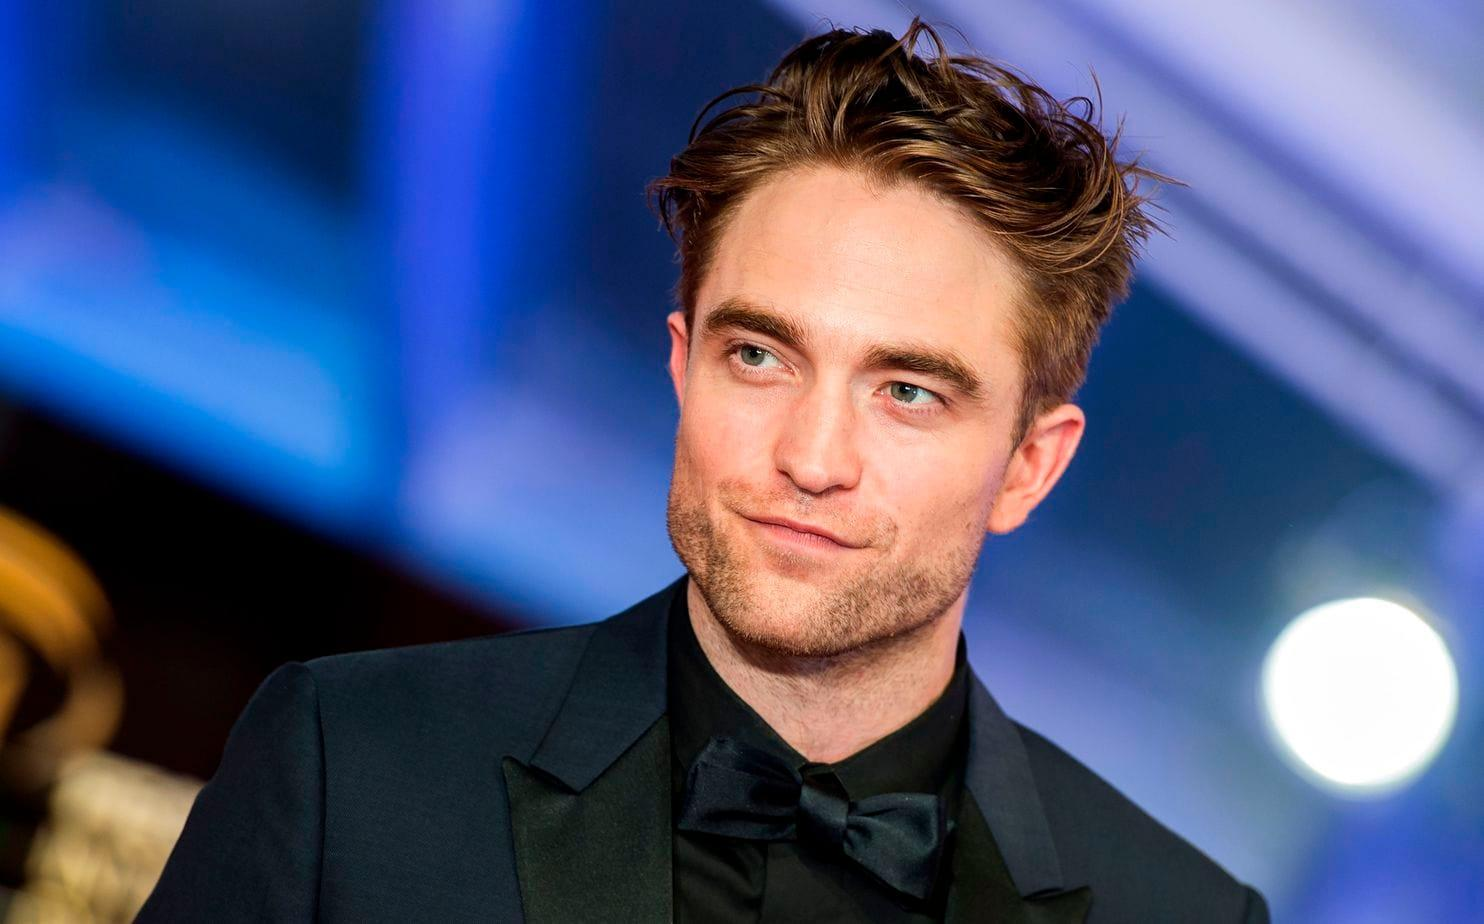 Robert Pattinson - Would He Reprise His 'Twilight' Role If The New Book 'Midnight Sun' Was Adapted Into A Movie?